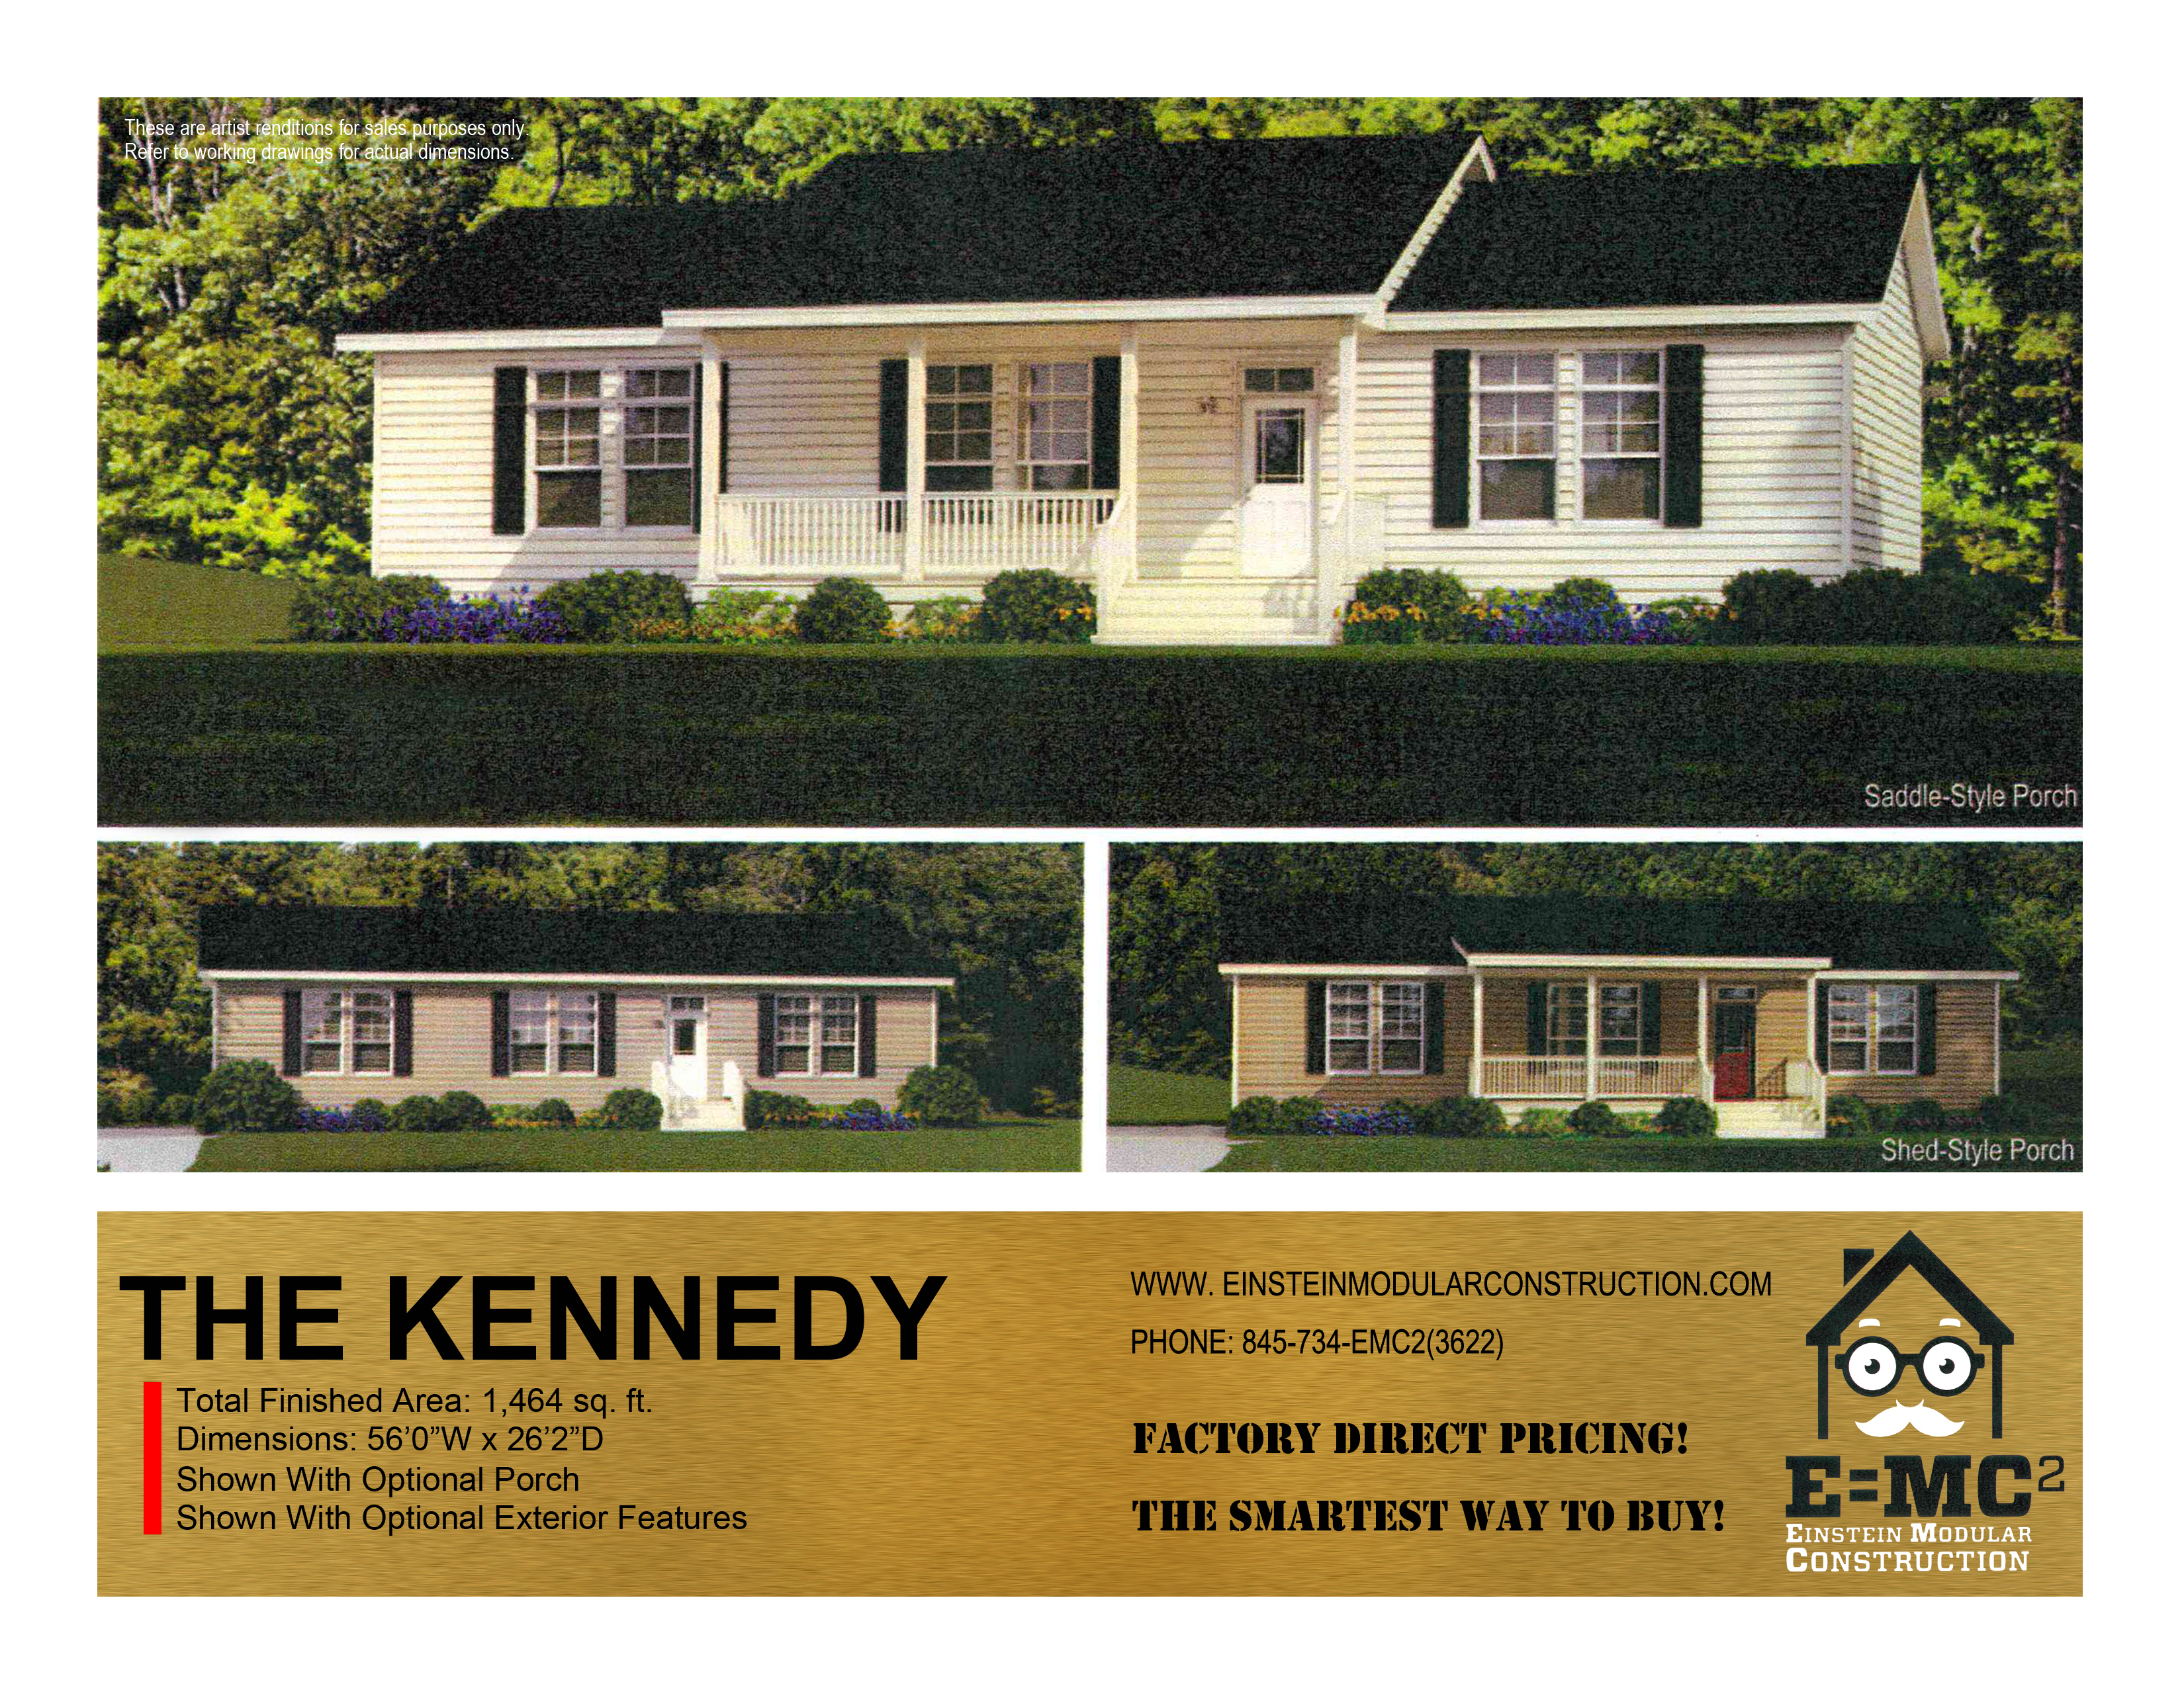 Whole Pricing And Factory Direct Modular Homes